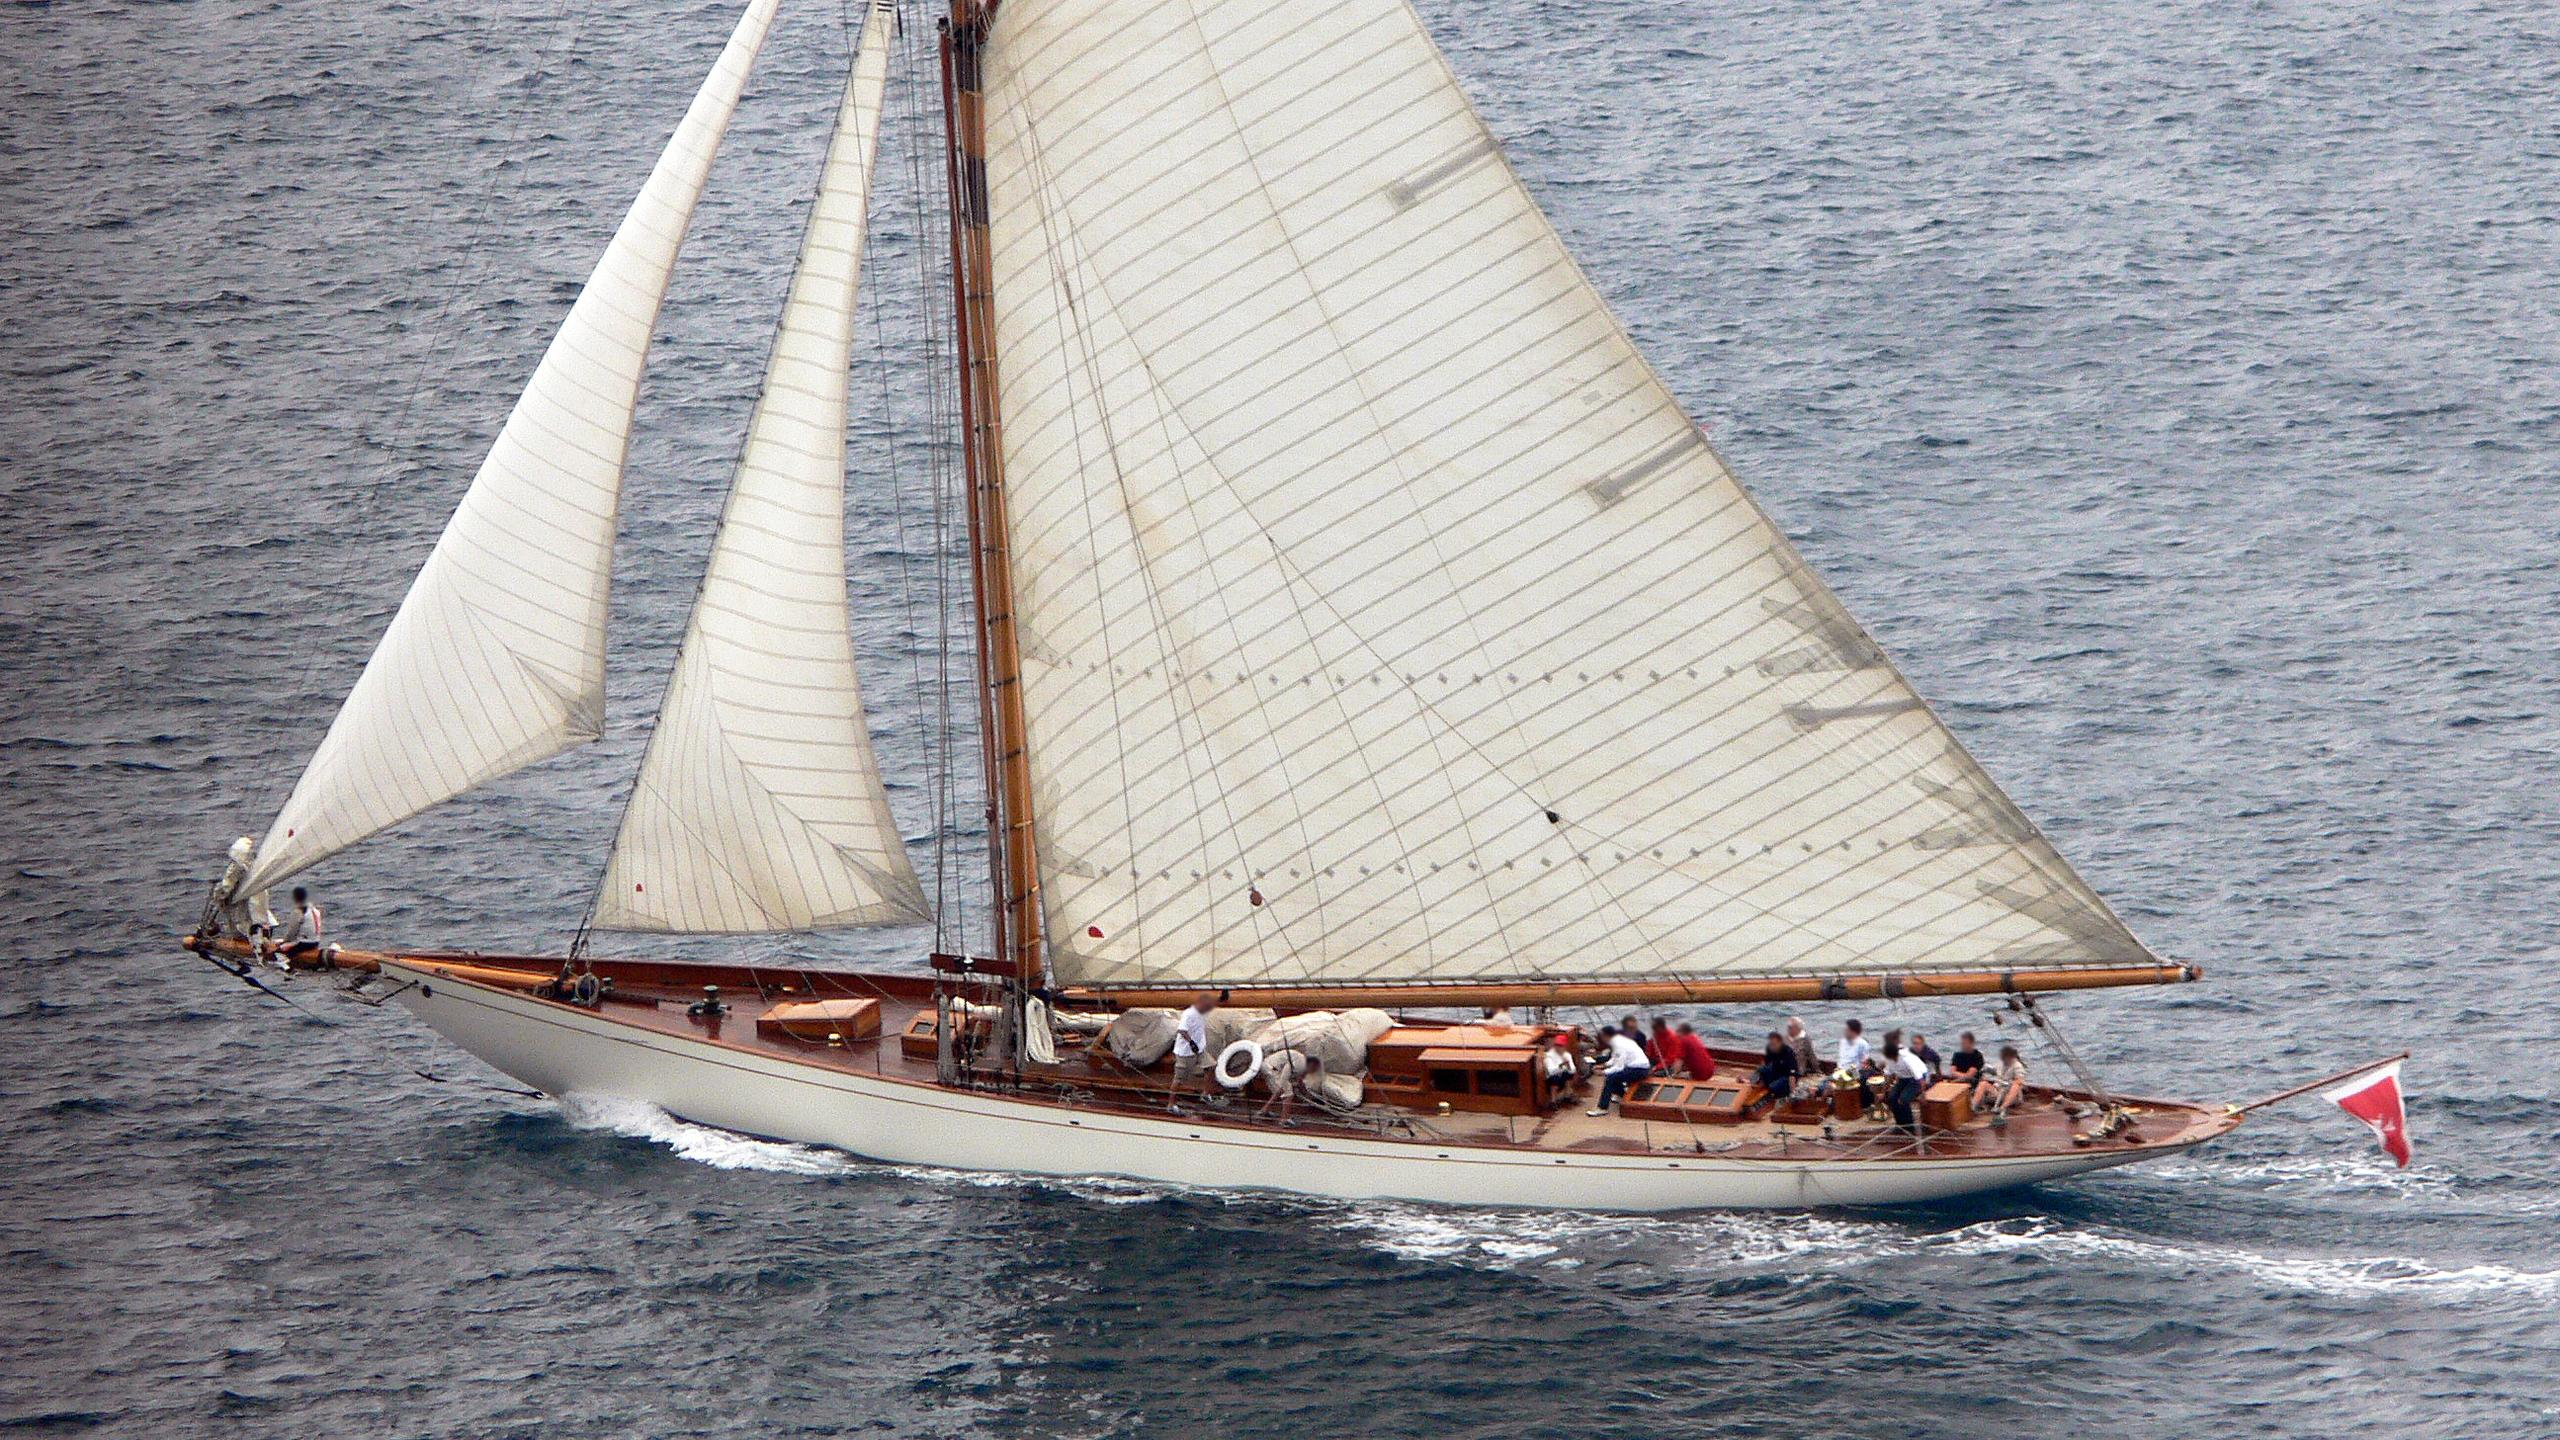 moonbeam-iv-sailing-yacht-fife-1920-32m-cruising-half-profile